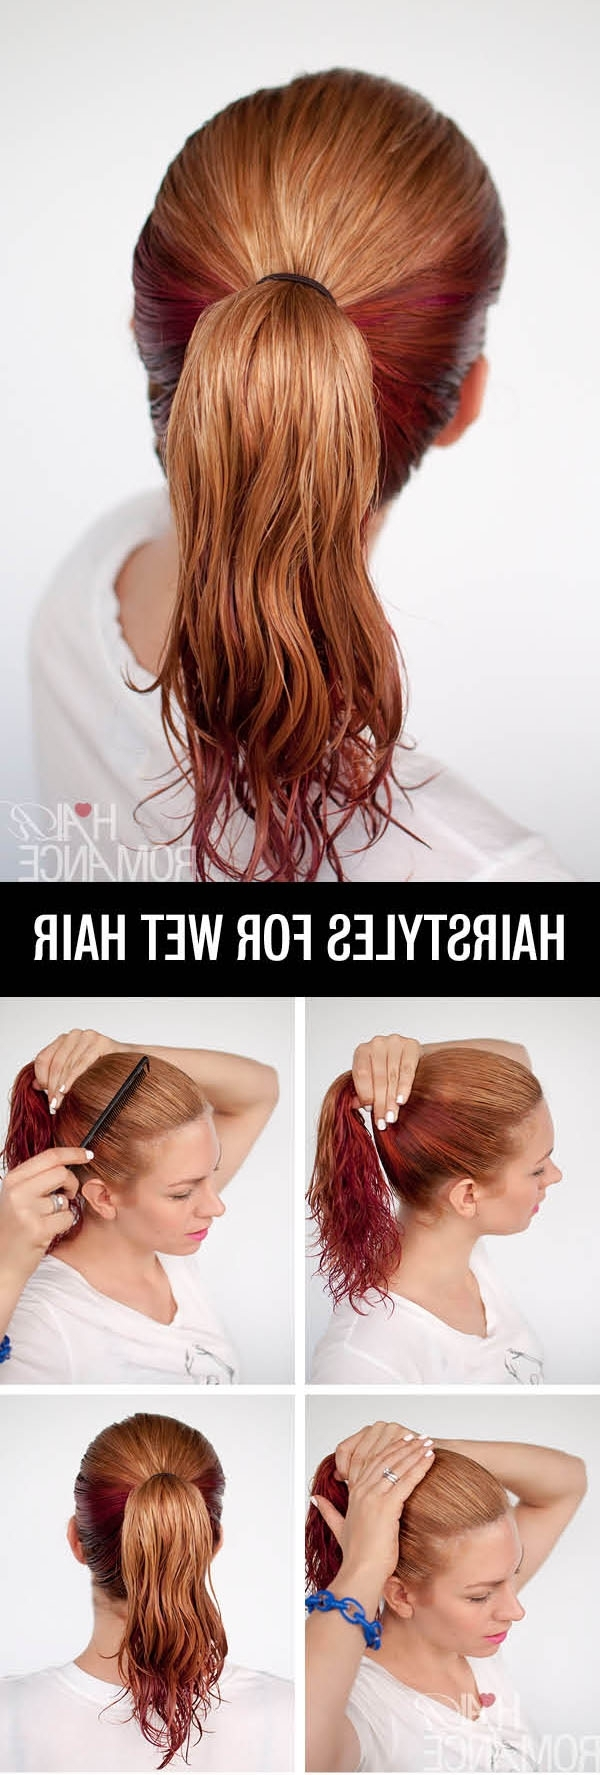 Get Ready Fast With 7 Easy Hairstyle Tutorials For Wet Hair – Hair Regarding Wet Hair Updo Hairstyles (Gallery 10 of 15)